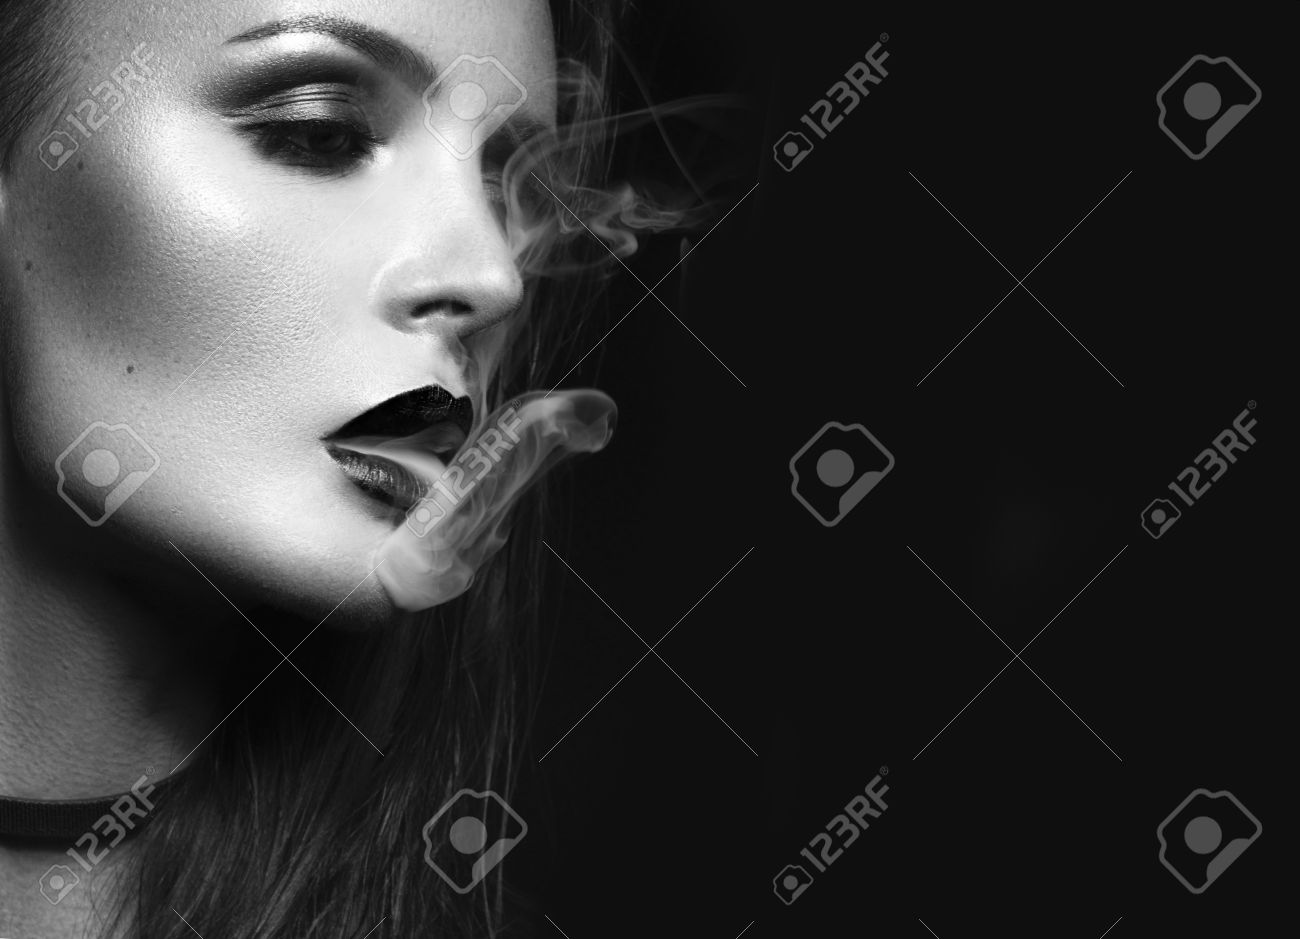 Beautiful brunette girl with bright makeup, red lips, smoking with smoke from mouth. beauty face. Black and white. Photos shot in the studio on a black background. - 60569985